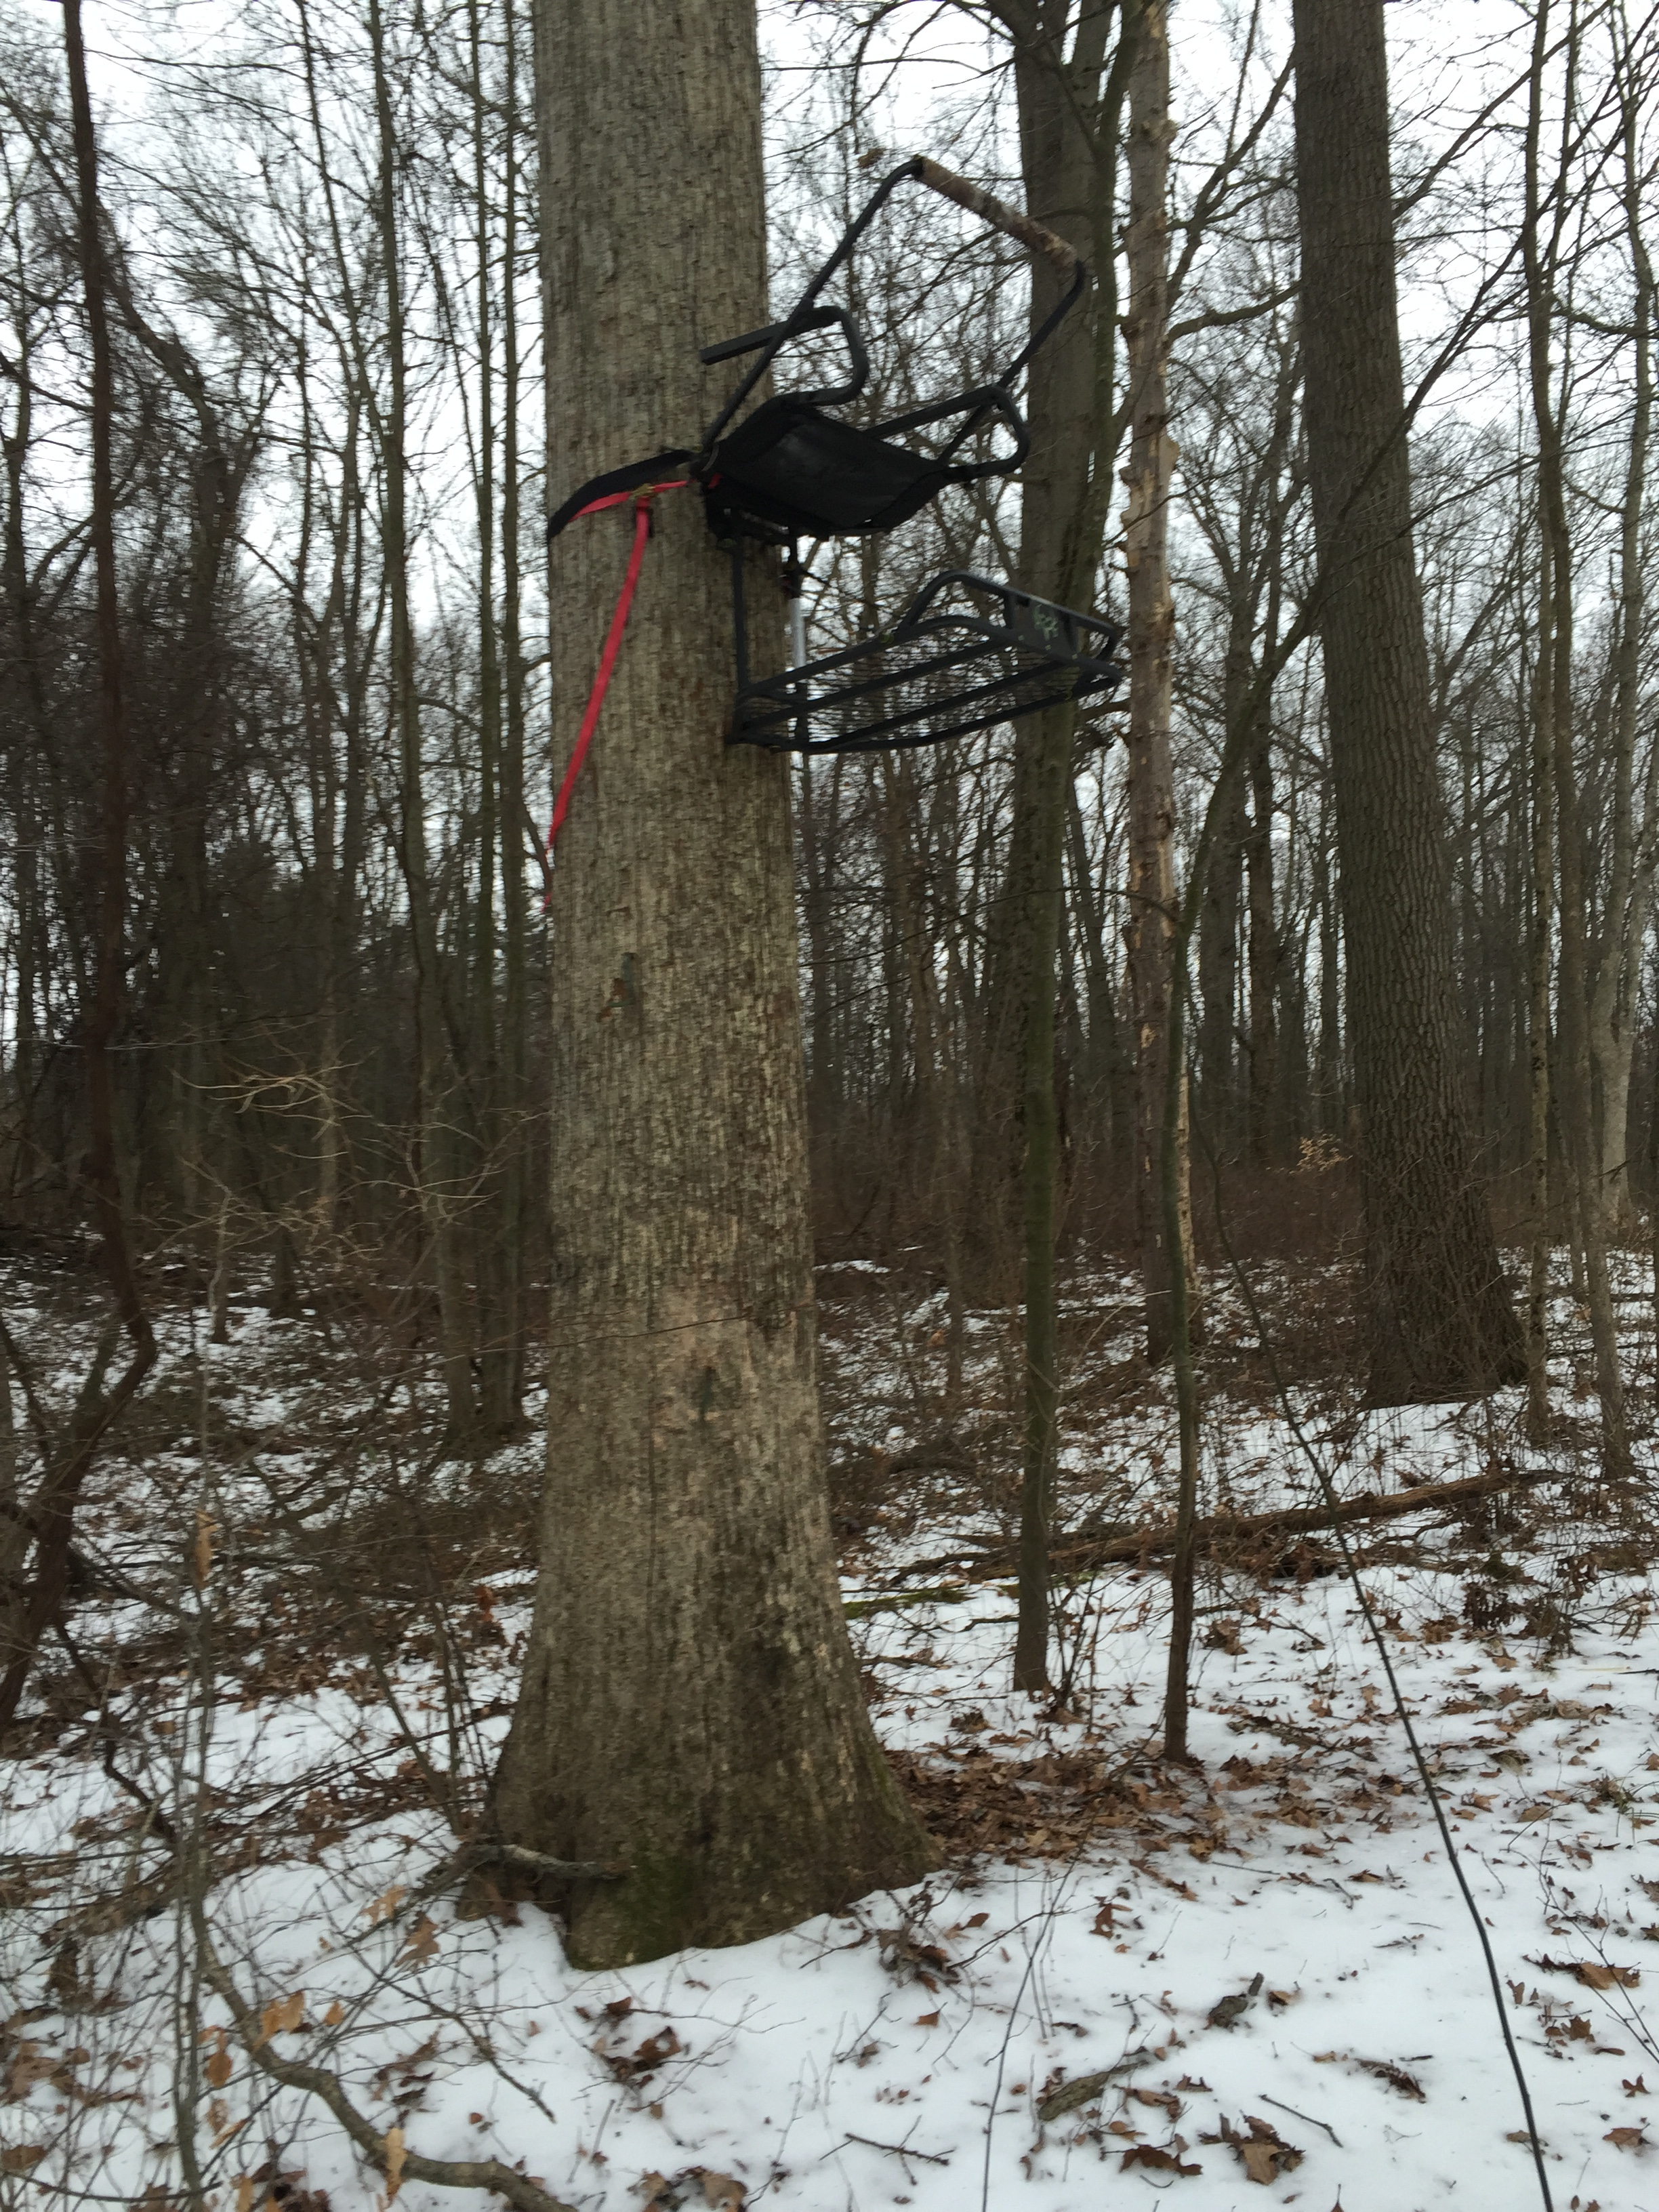 An illegal treestand left in for multiple seasons on public land. Use this intel to steer clear of such areas.)